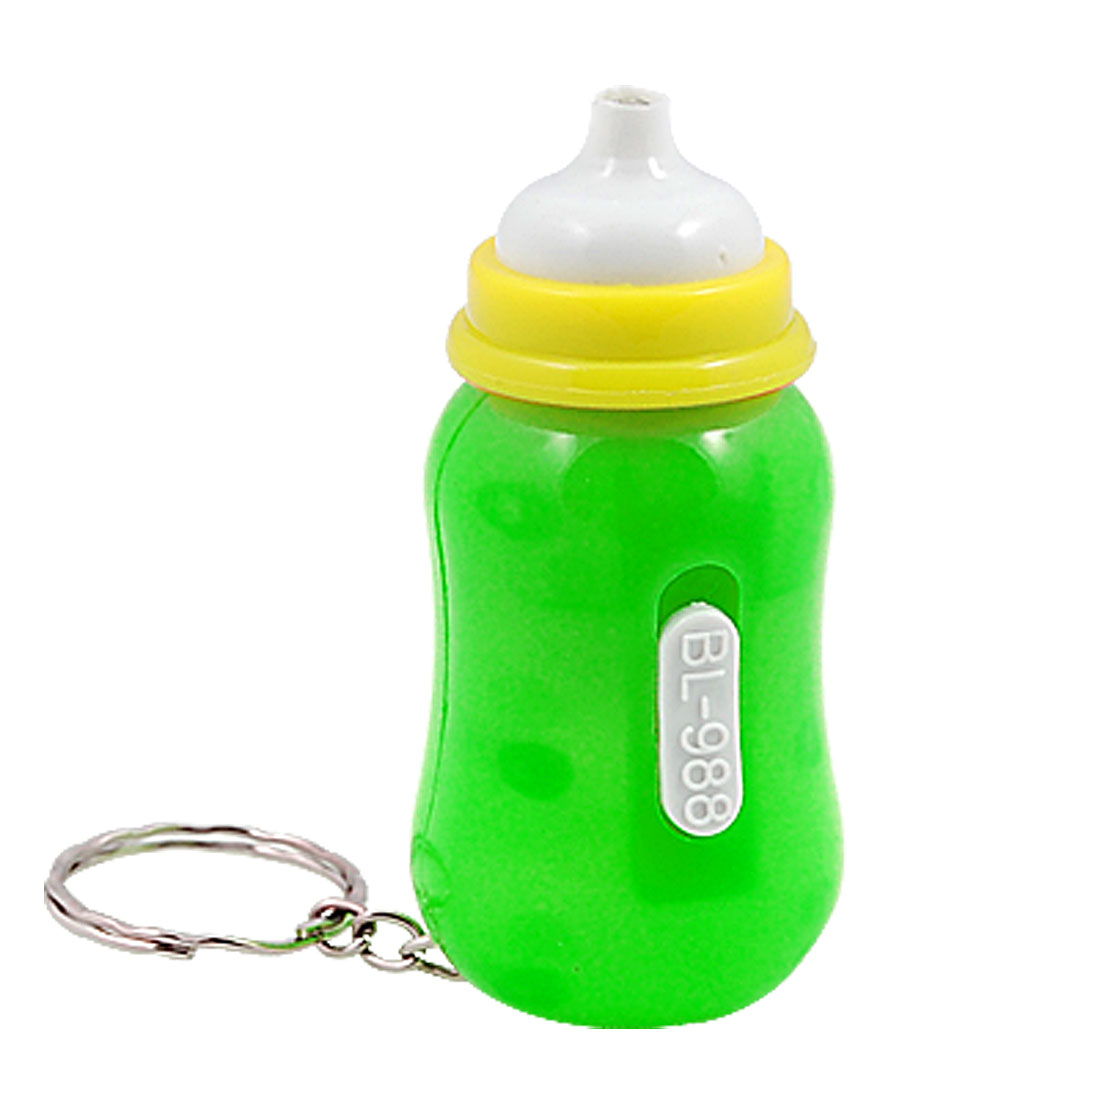 Raising Bottle Design LED Light Key Chain Key Ring Green